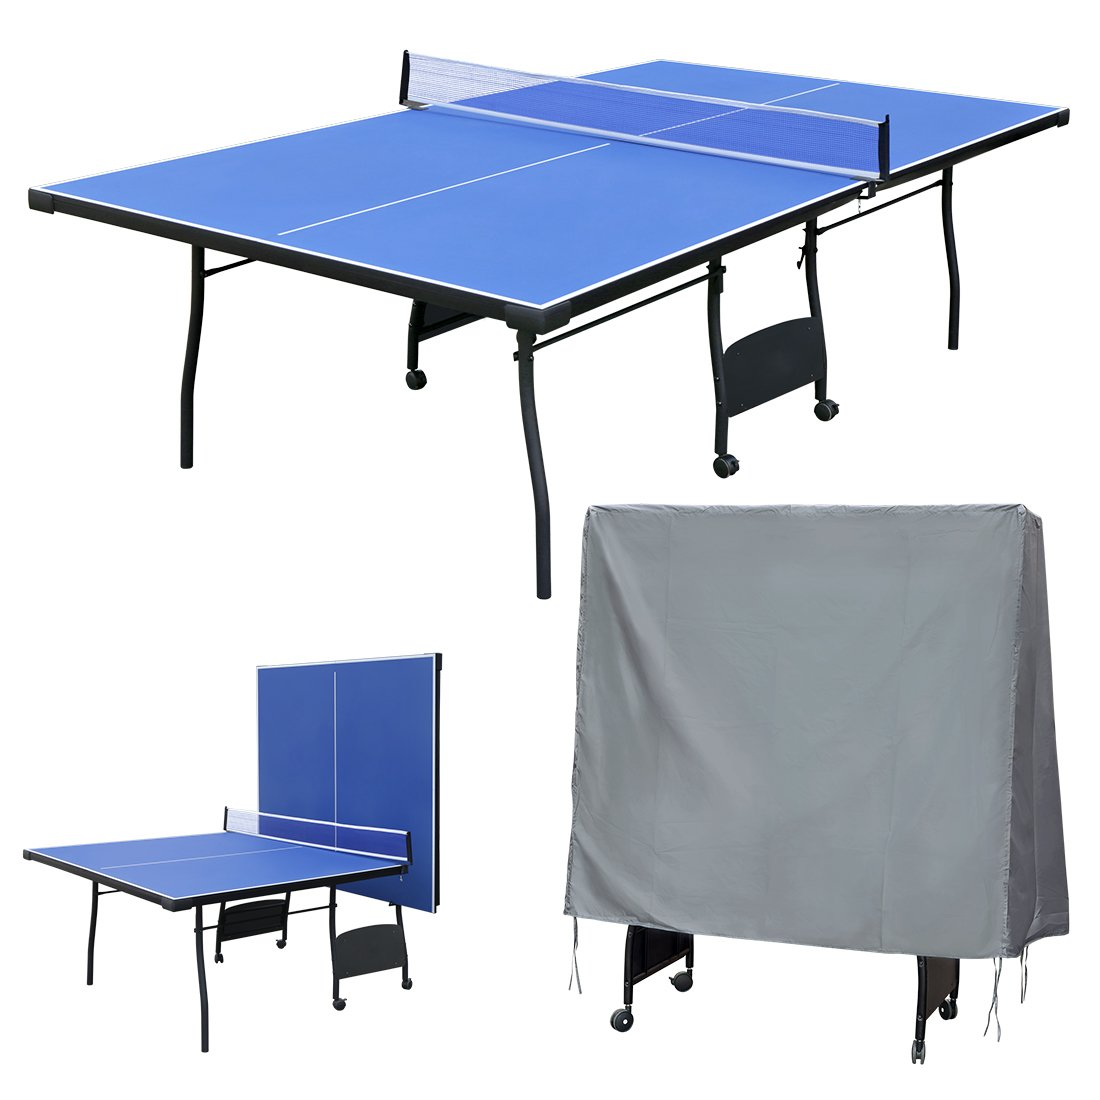 Funmall Folding Table Tennis Table with Waterproof Ping Pong Table Cover